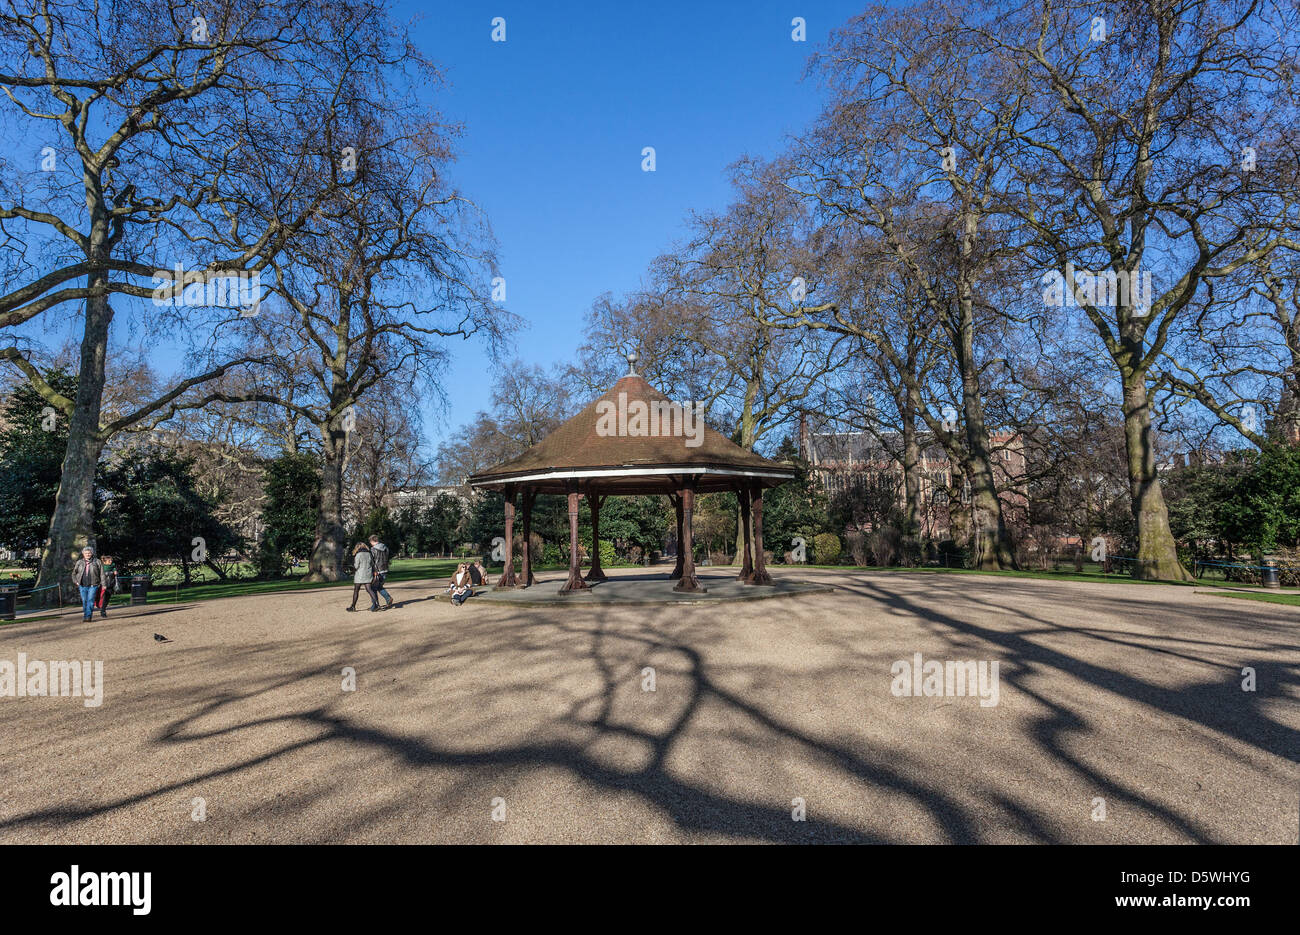 Lincoln's Inn Square, largest public square in London, Newman's Row, Holborn, London, England, UK Stock Photo